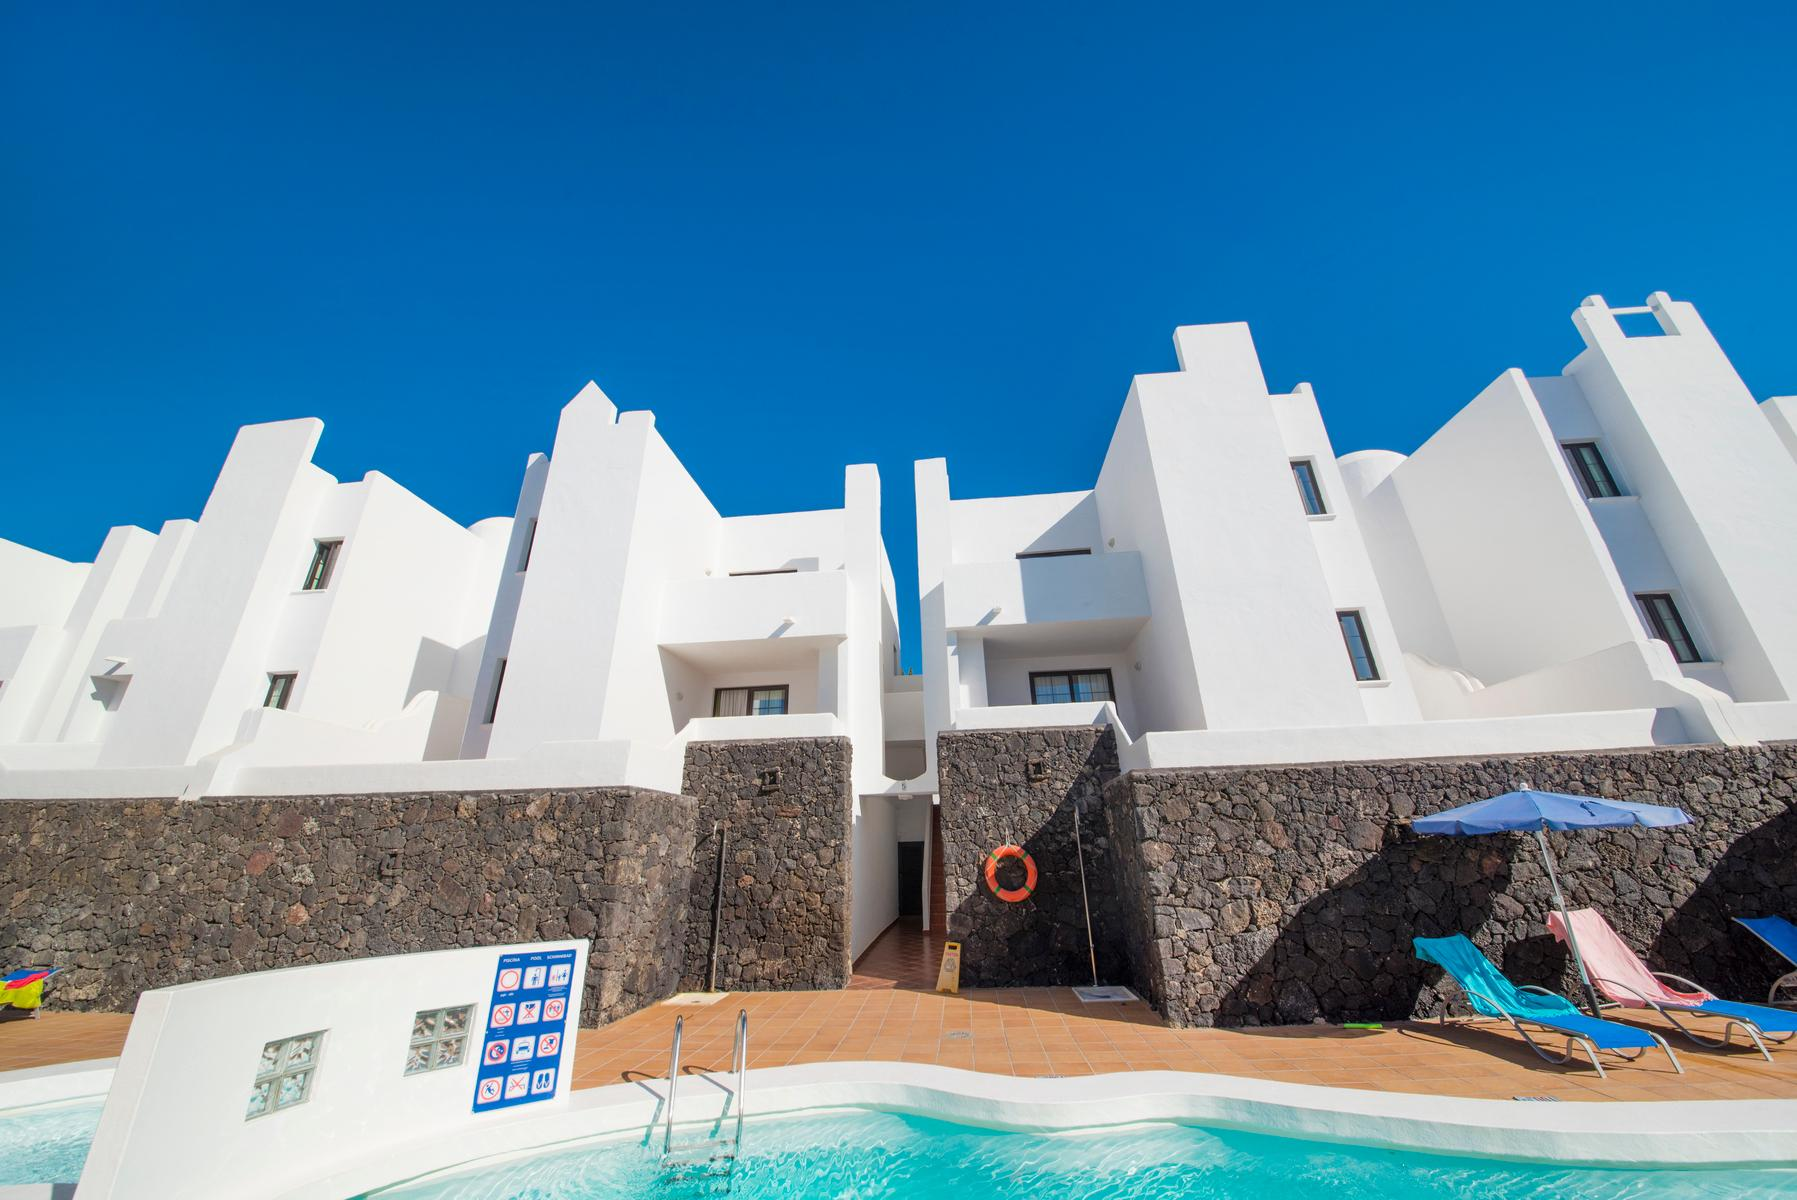 Tabaiba in Costa Teguise, Lanzarote, Canary Islands